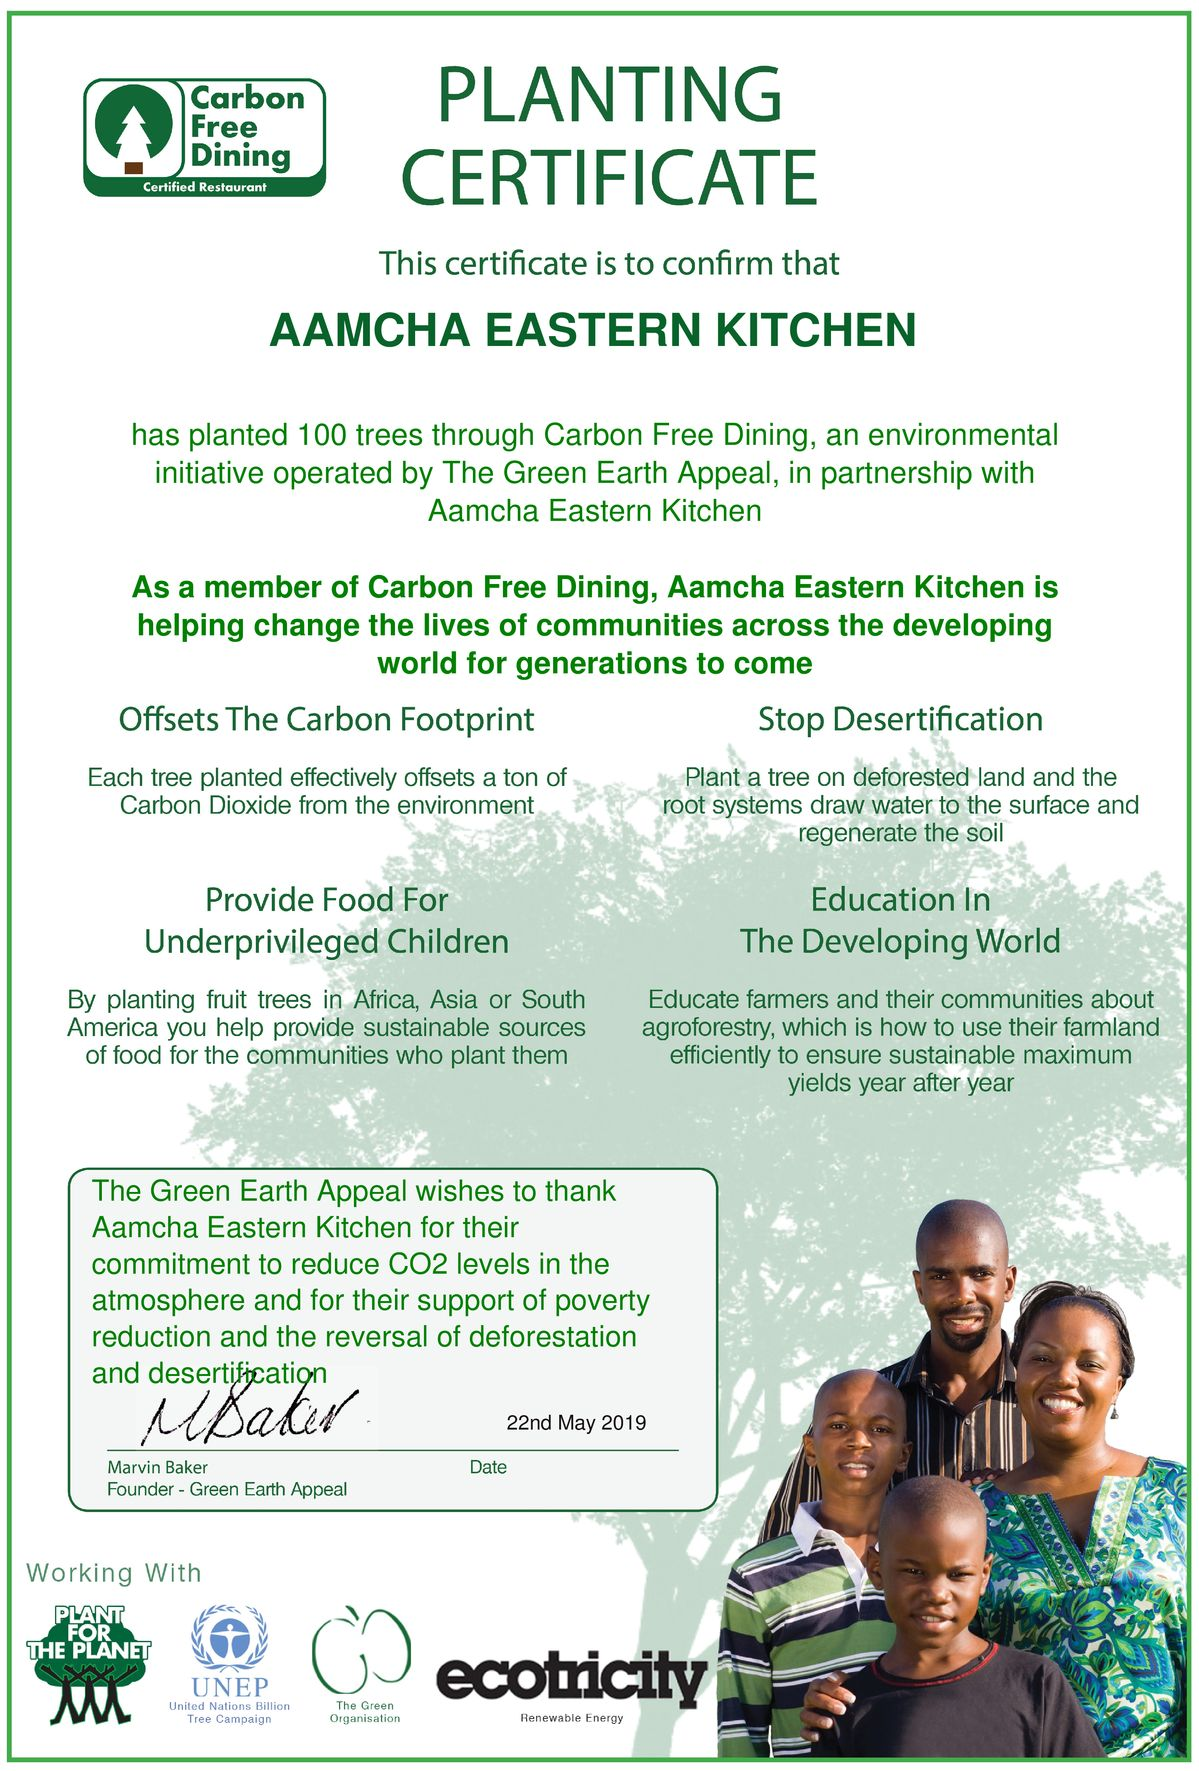 Aamcha Eastern Kitchen